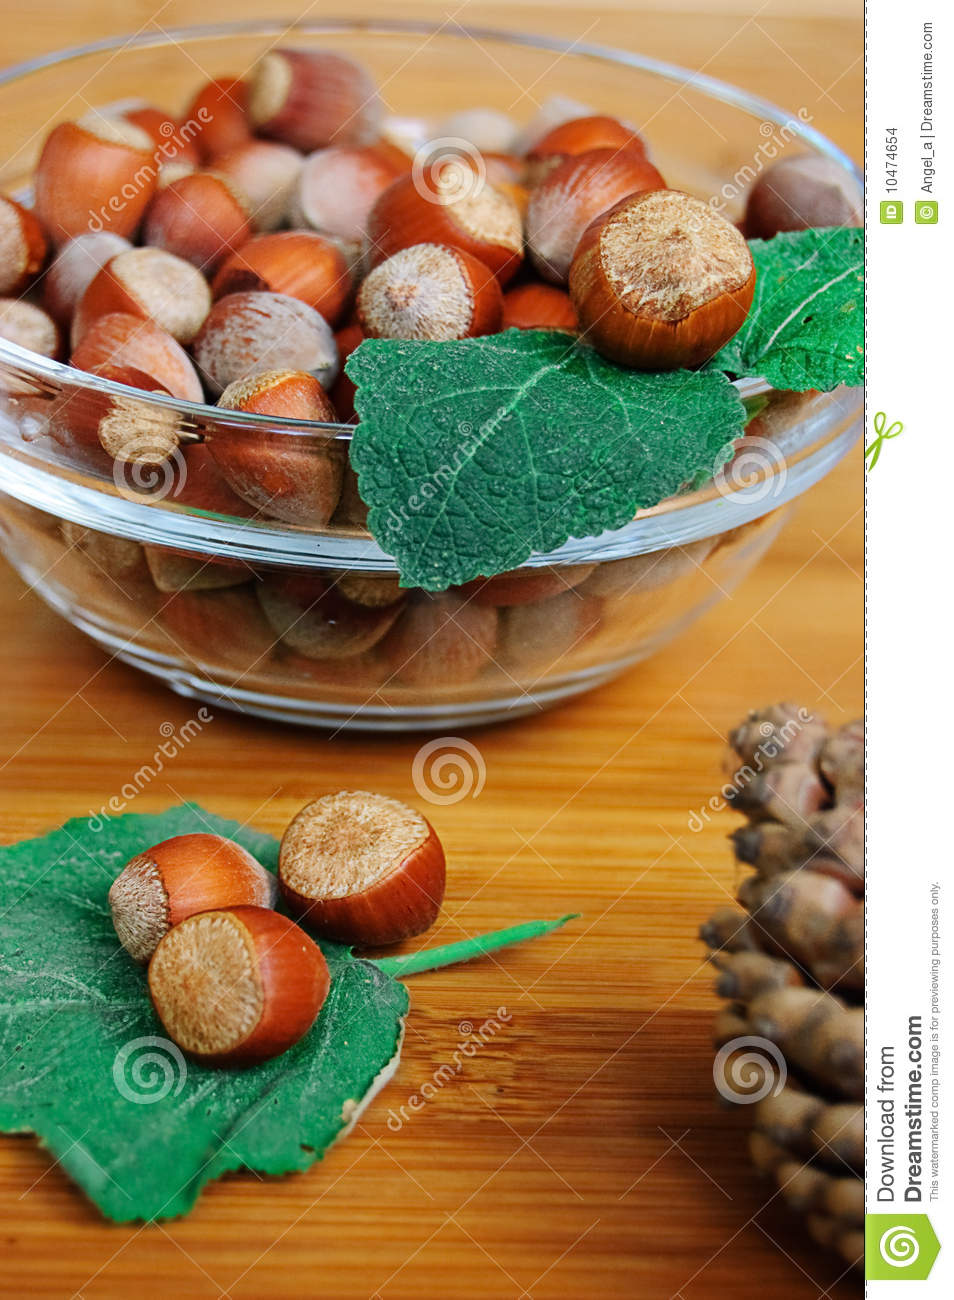 Some Hazelnuts In The Plate Stock Photography